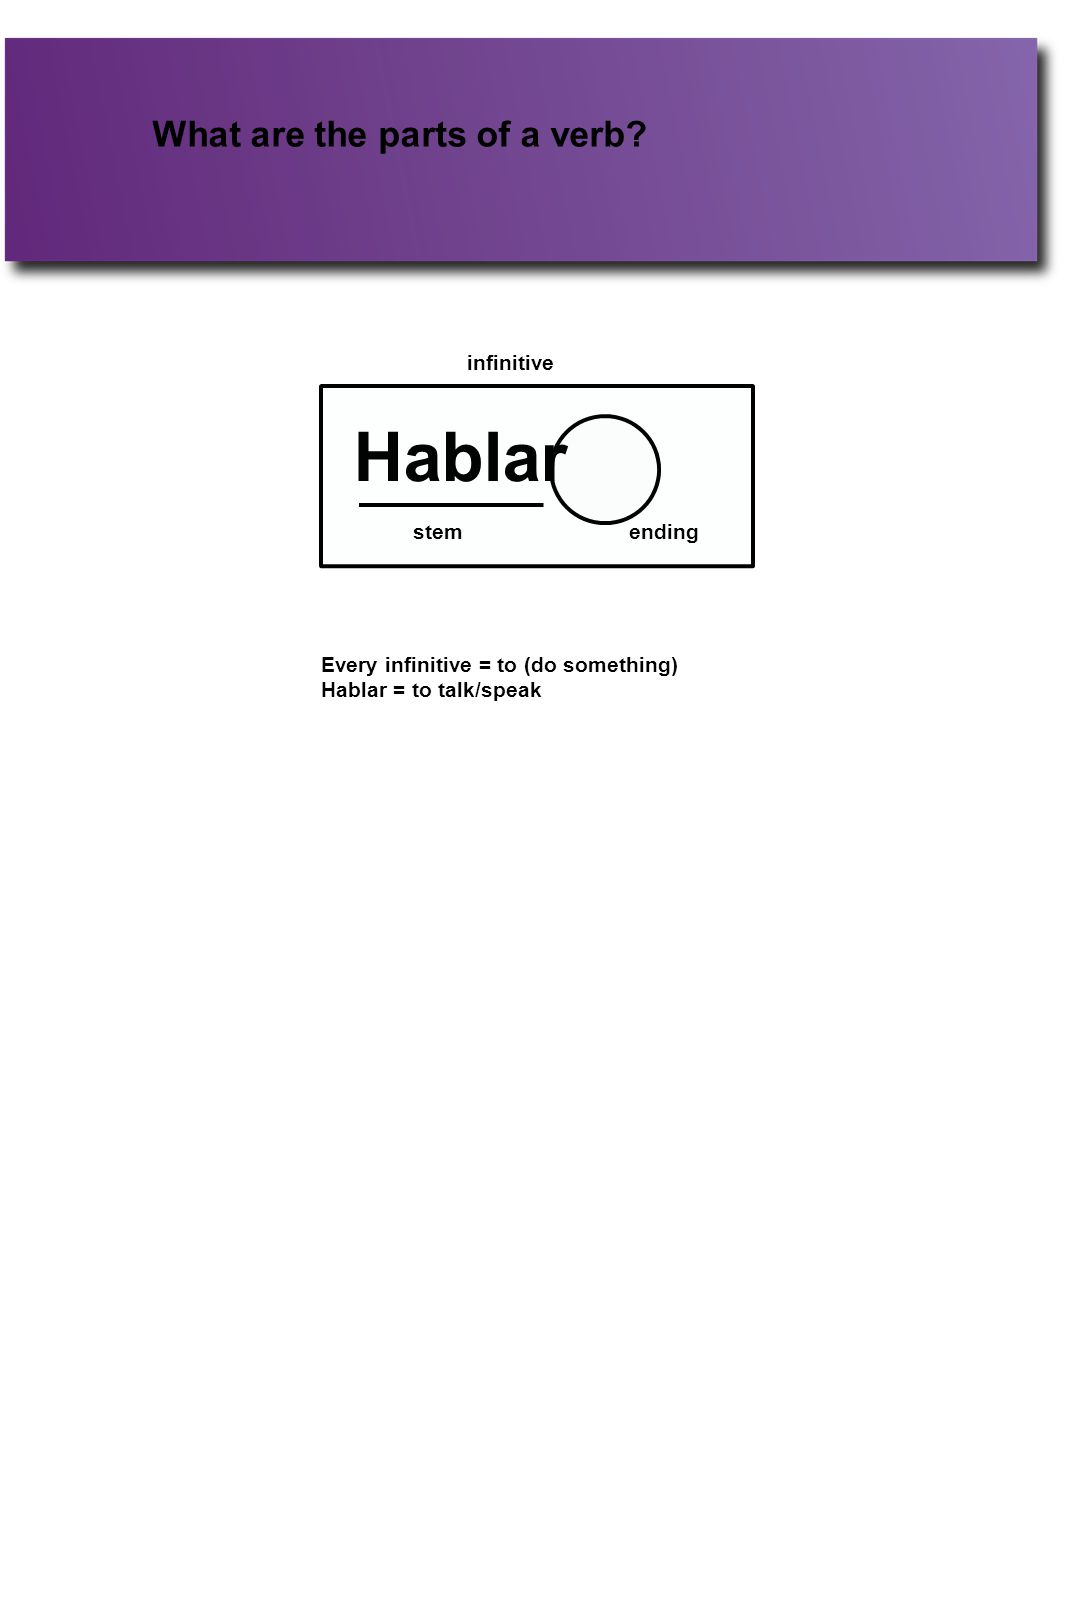 What are the parts of a verb? Hablar stemending infinitive Every infinitive = to (do something) Hablar = to talk/speak